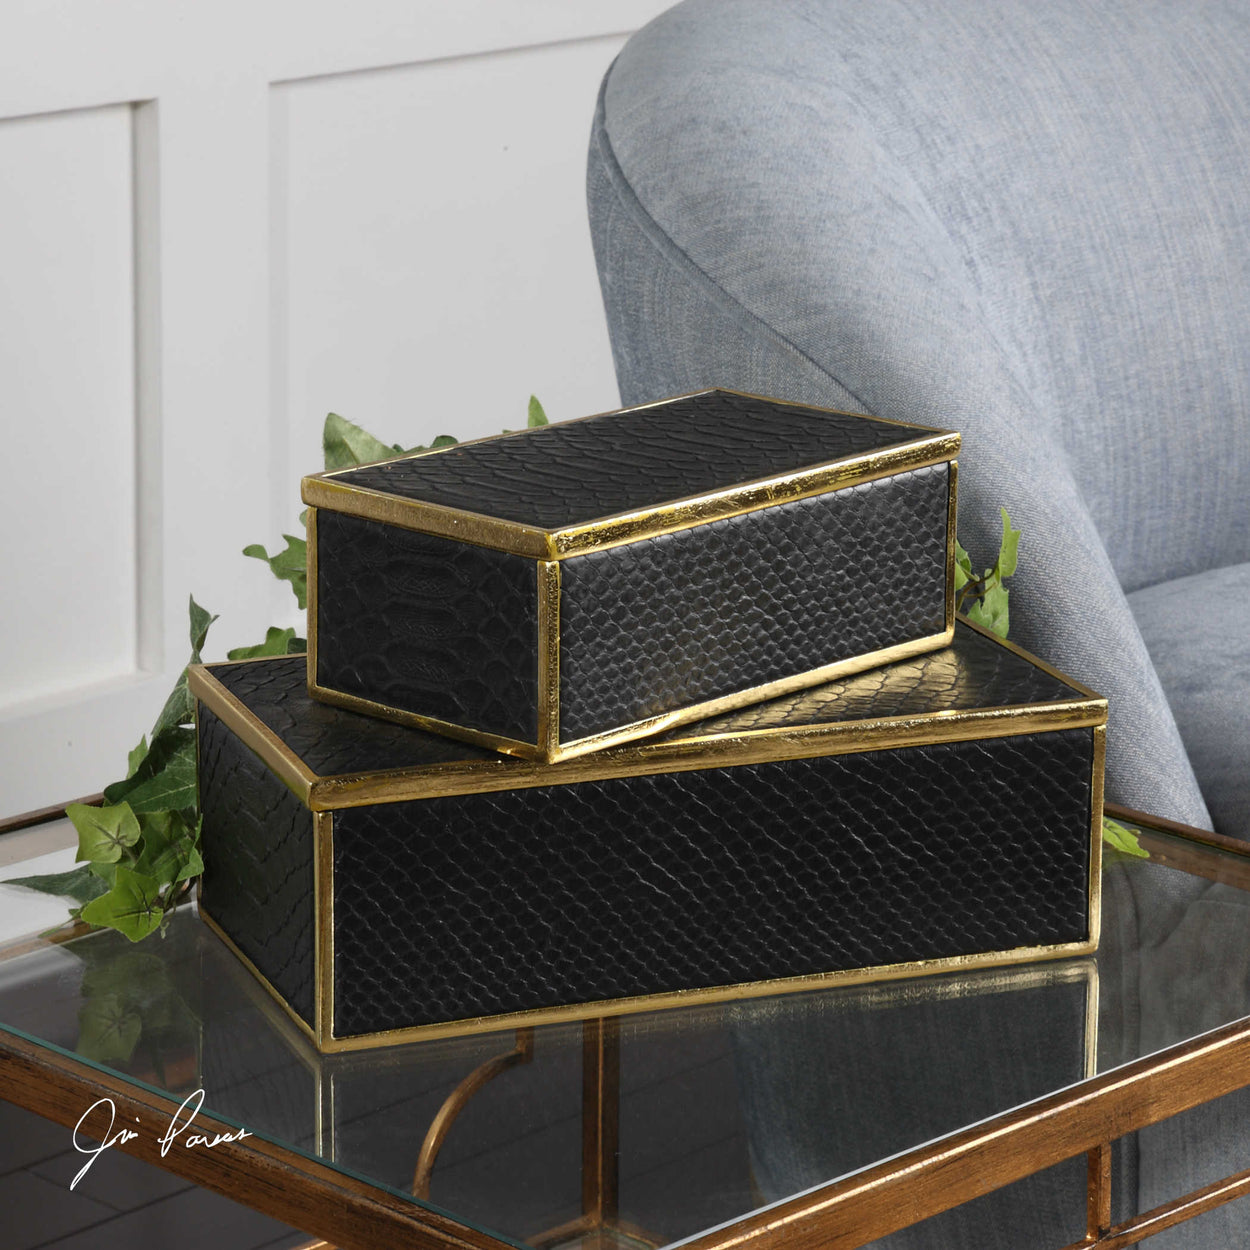 Black alligator patterned boxes with bright gold leaf trim and removable lids. Sizes: Sm-9x5x3, Lg-12x4x6